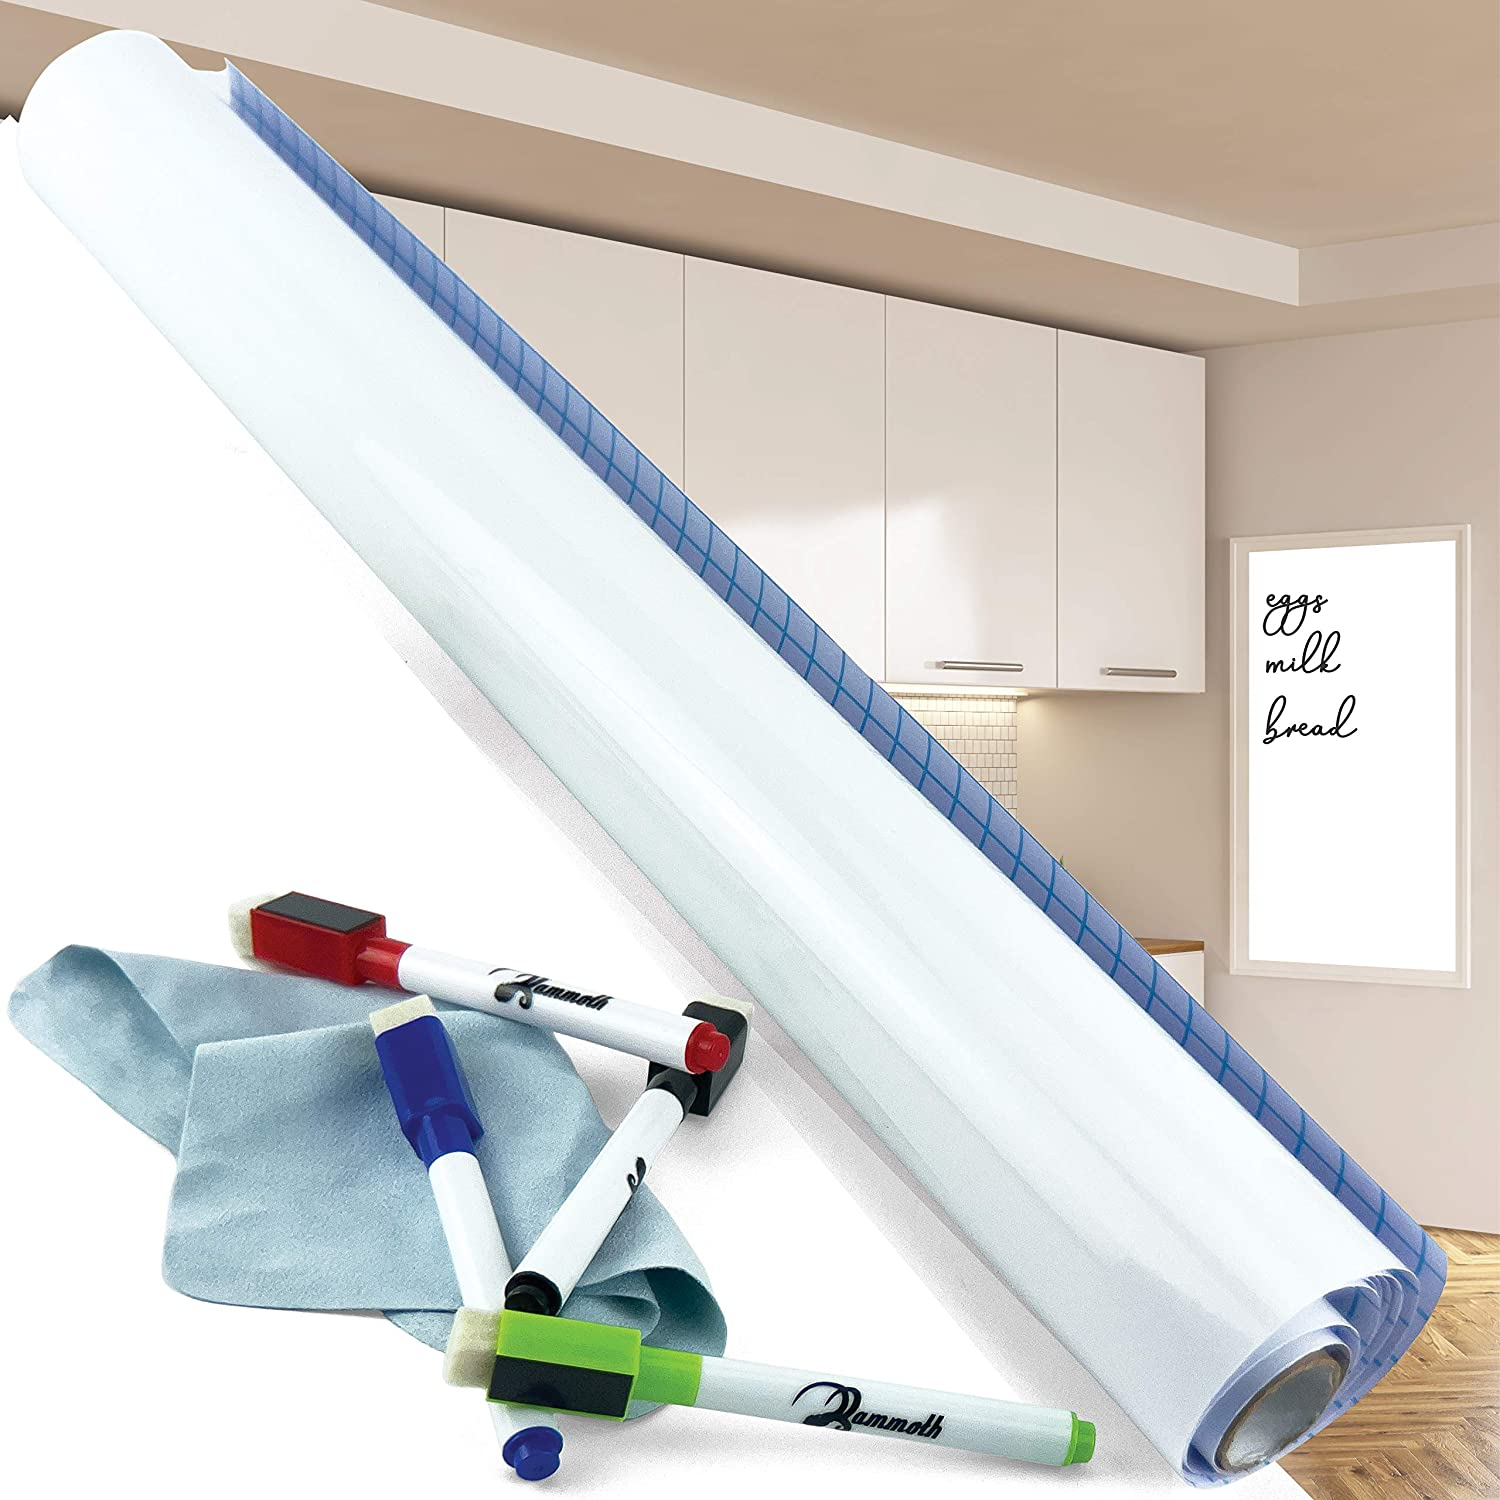 Mammoth Ranking TOP8 Adhesive Whiteboard Very popular! Wall Sticker Kit with 4 Ma Dry Erase